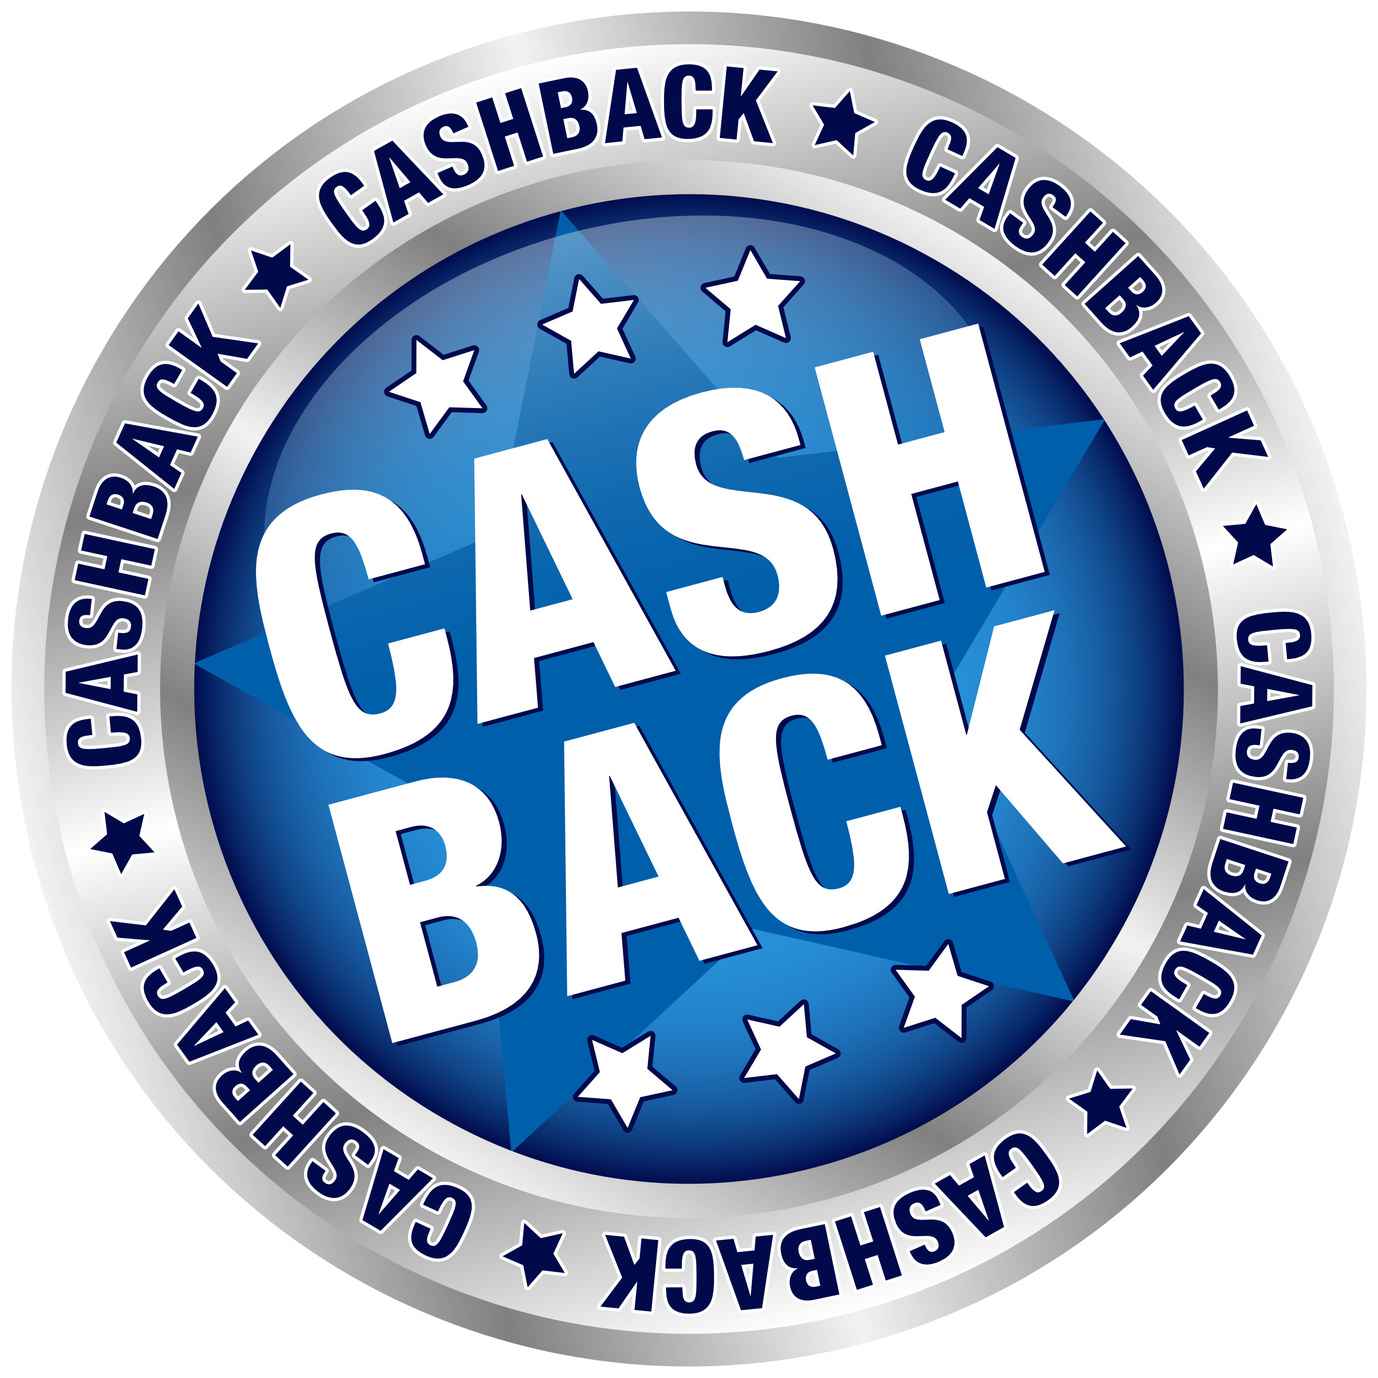 Get Cashback on your domestic gas and electricity